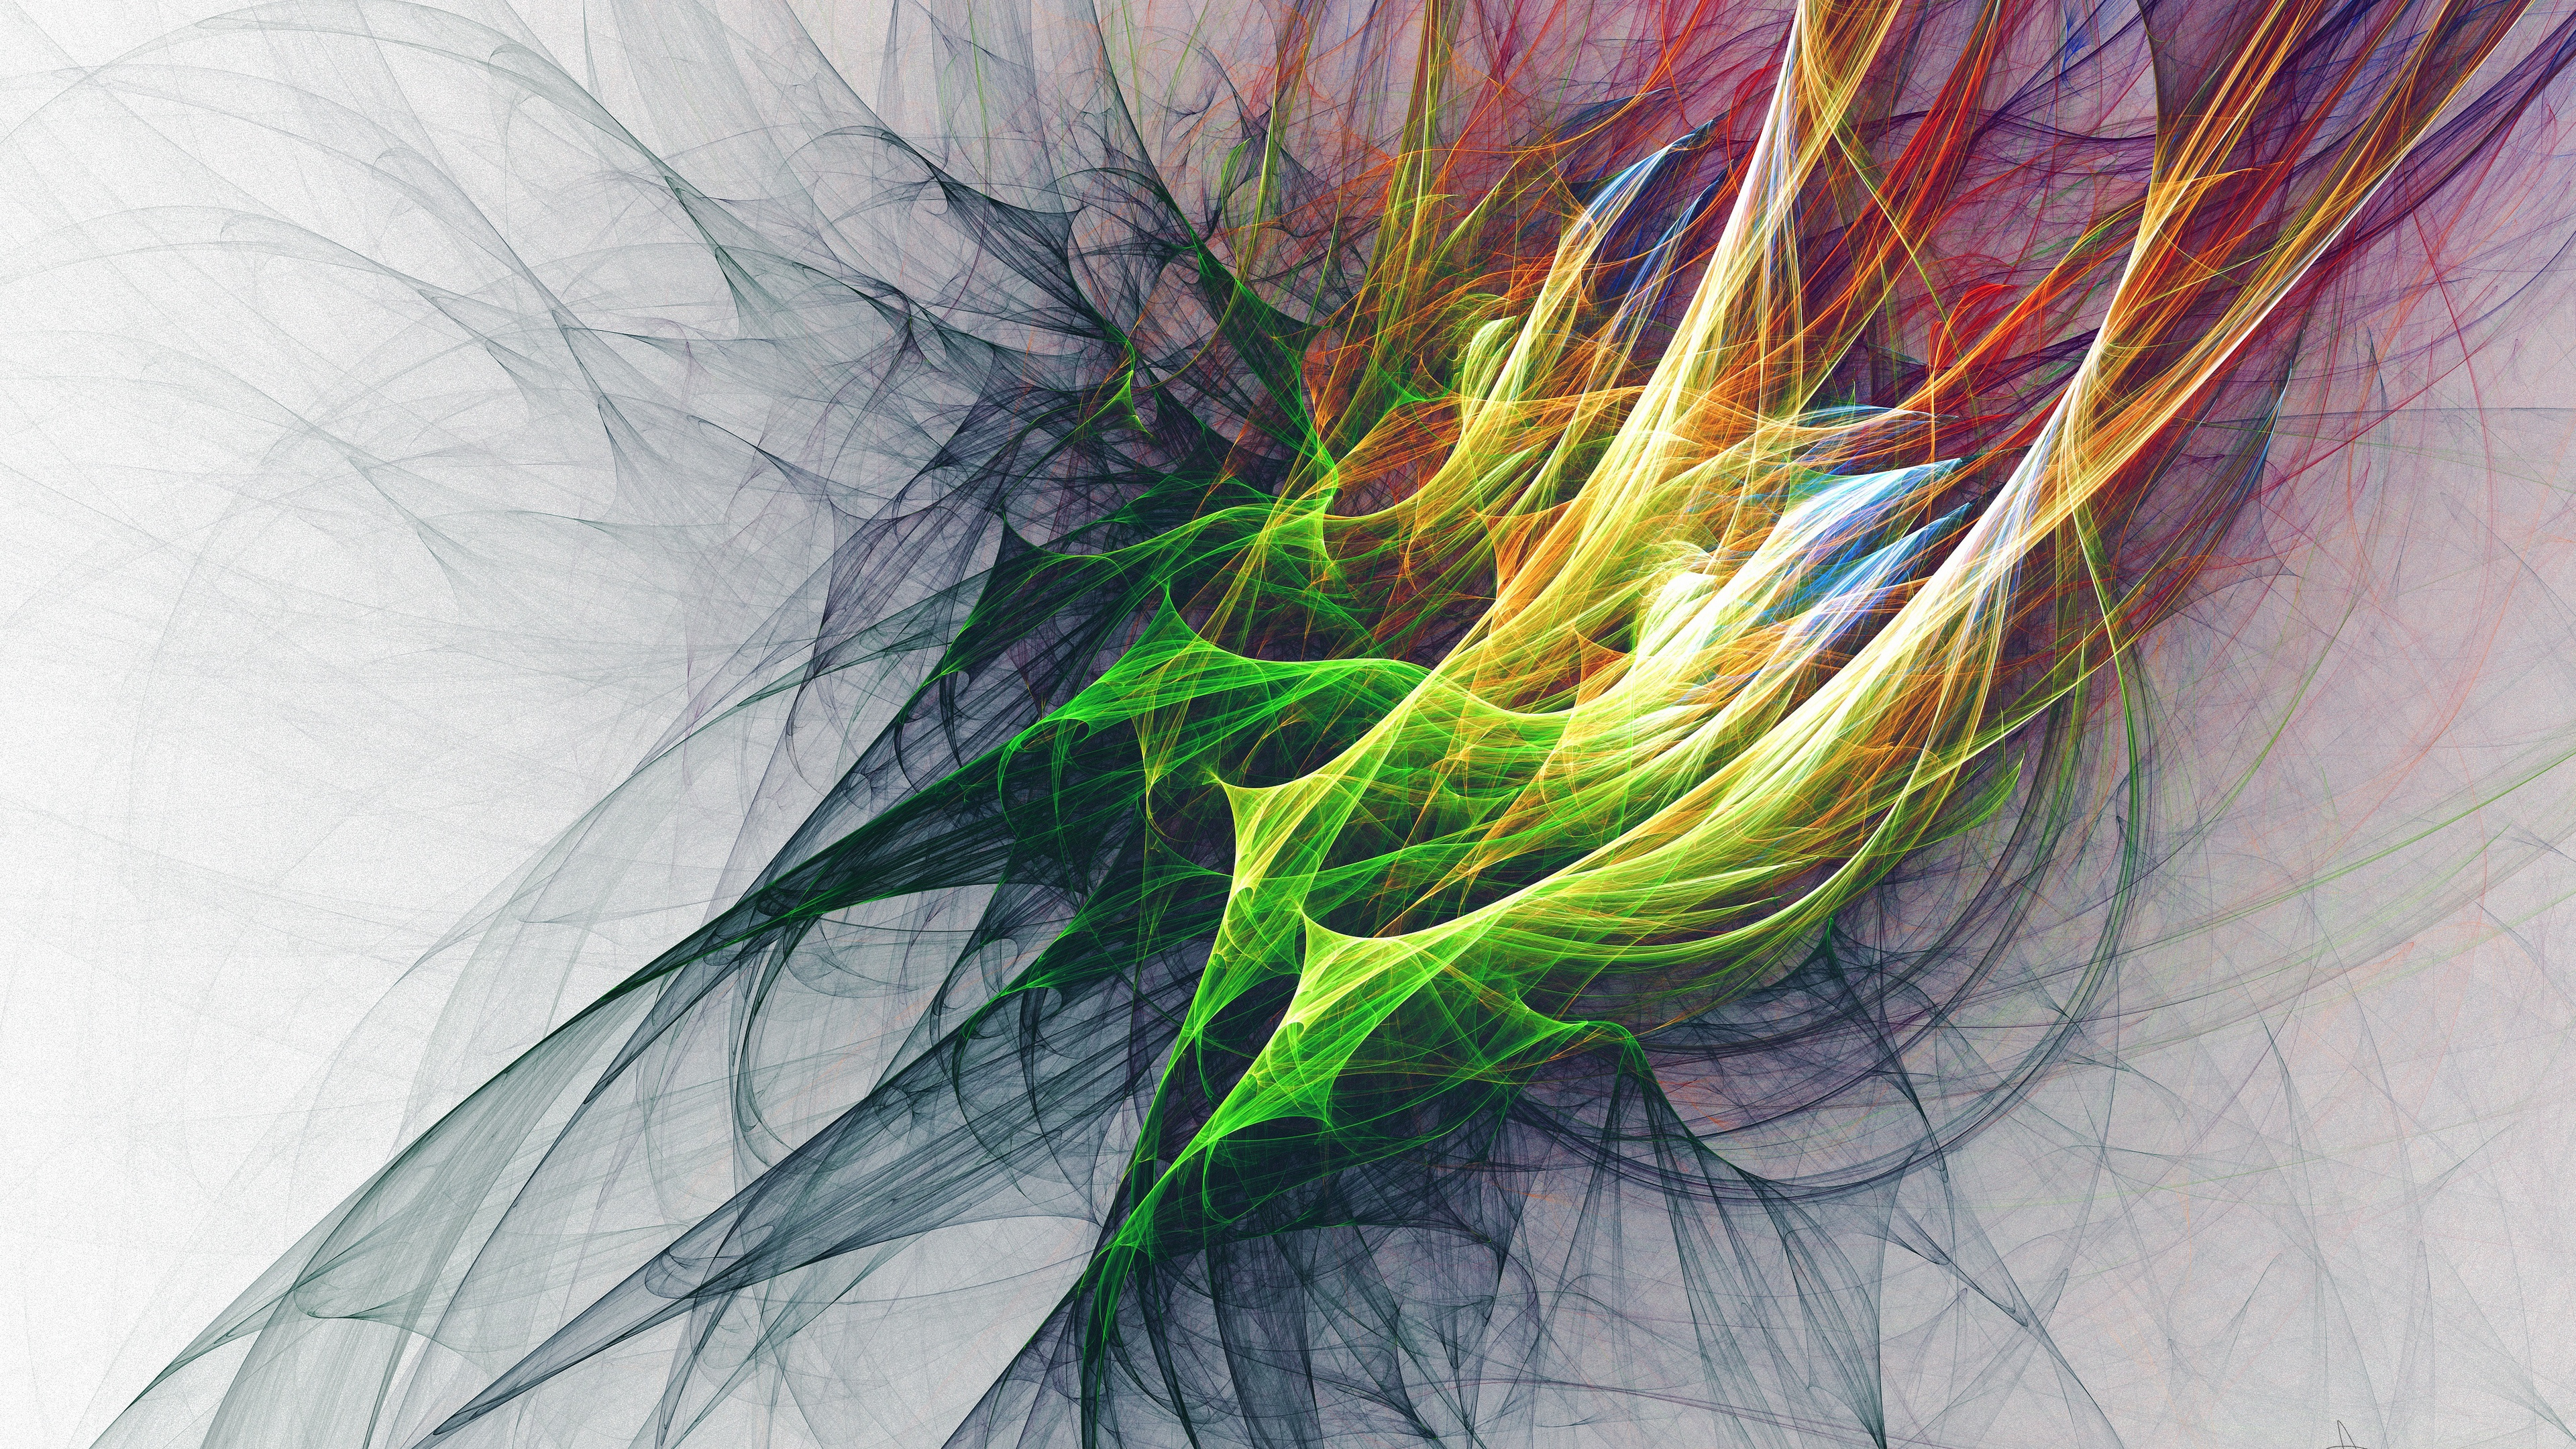 abstraction bunches colorful 4k 1539370262 - abstraction, bunches, colorful 4k - Colorful, bunches, Abstraction